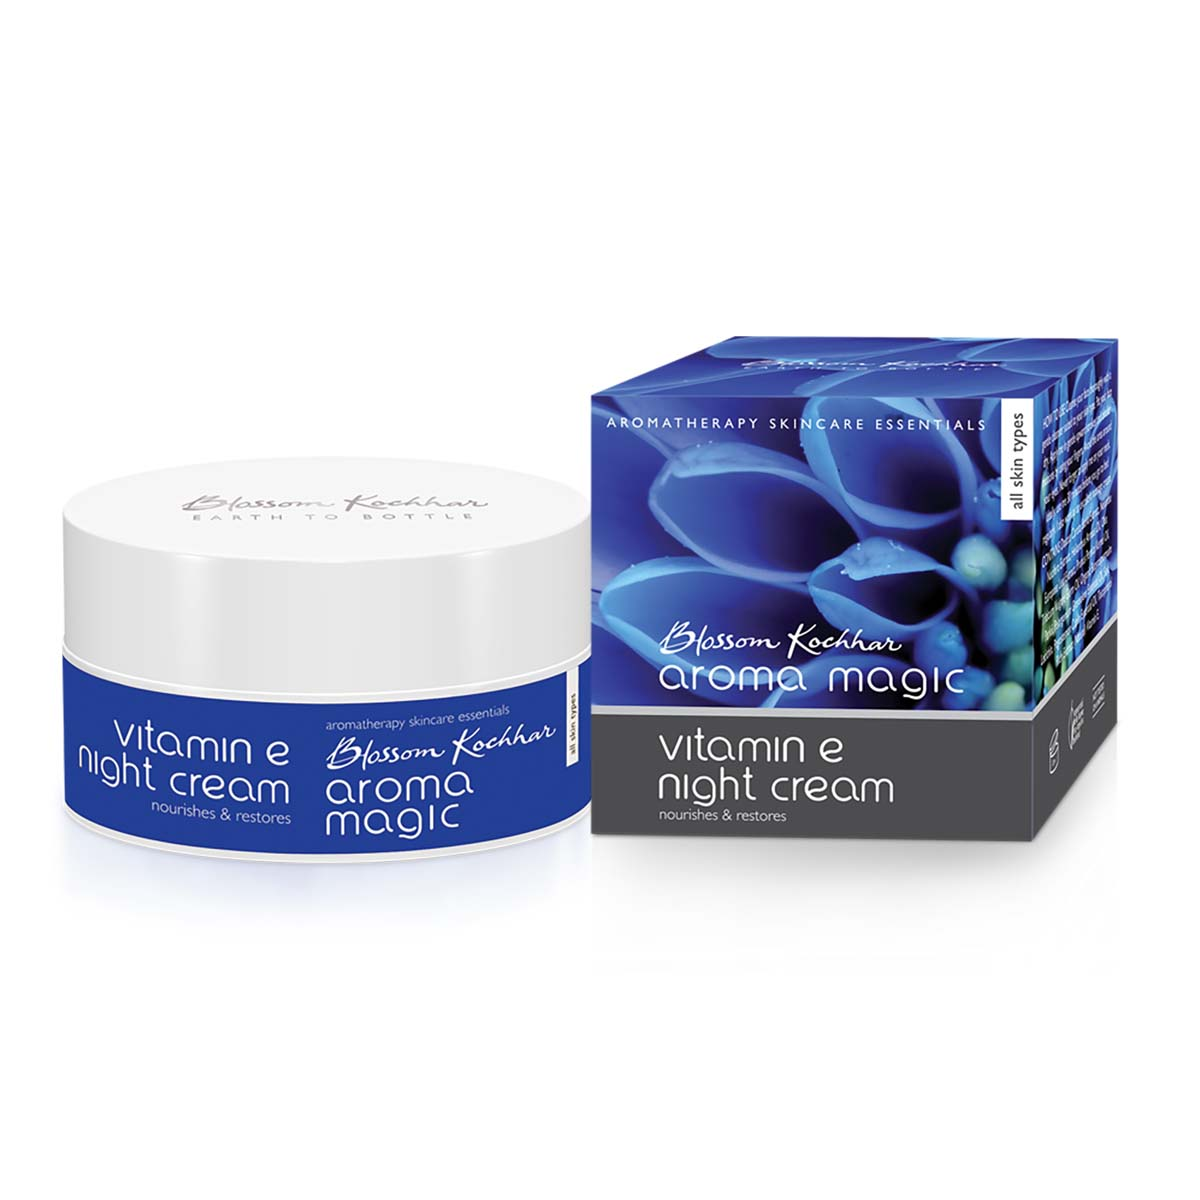 Aroma Magic Vitamin E Night Cream - Aroma Magic (1009465950251)